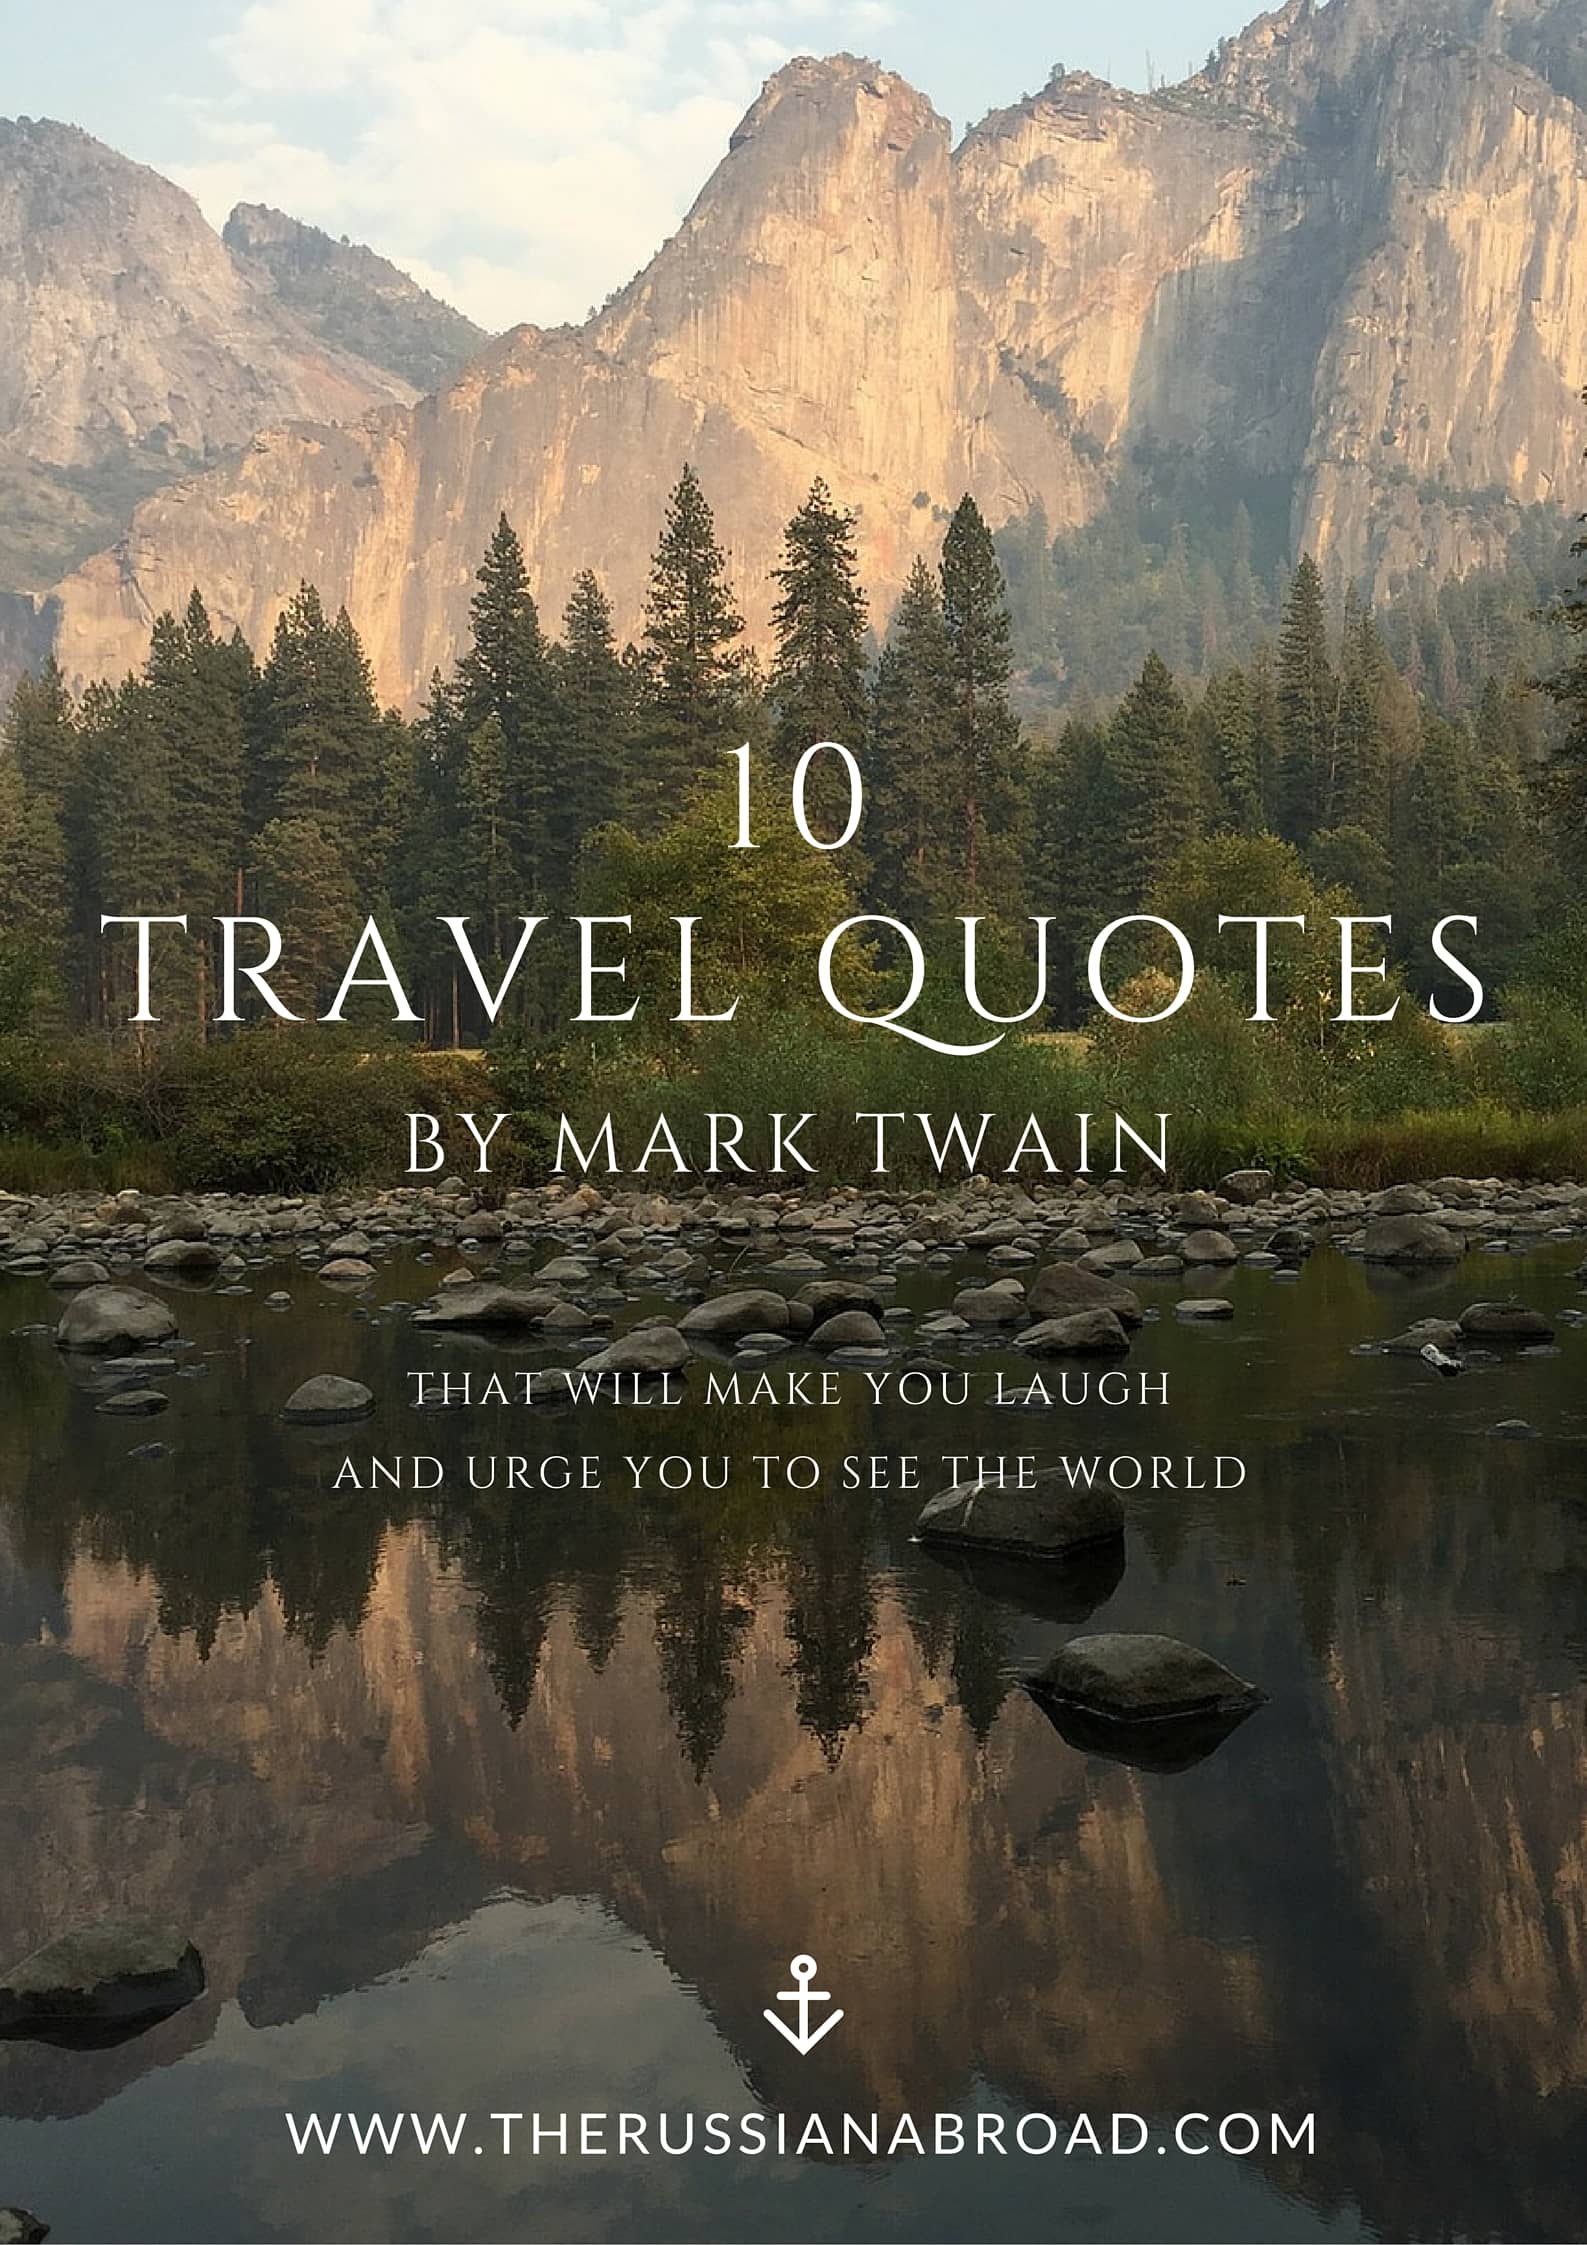 Mark Twain Quotes 10 Witty Travel Quotesmark Twain  The Russian Abroad